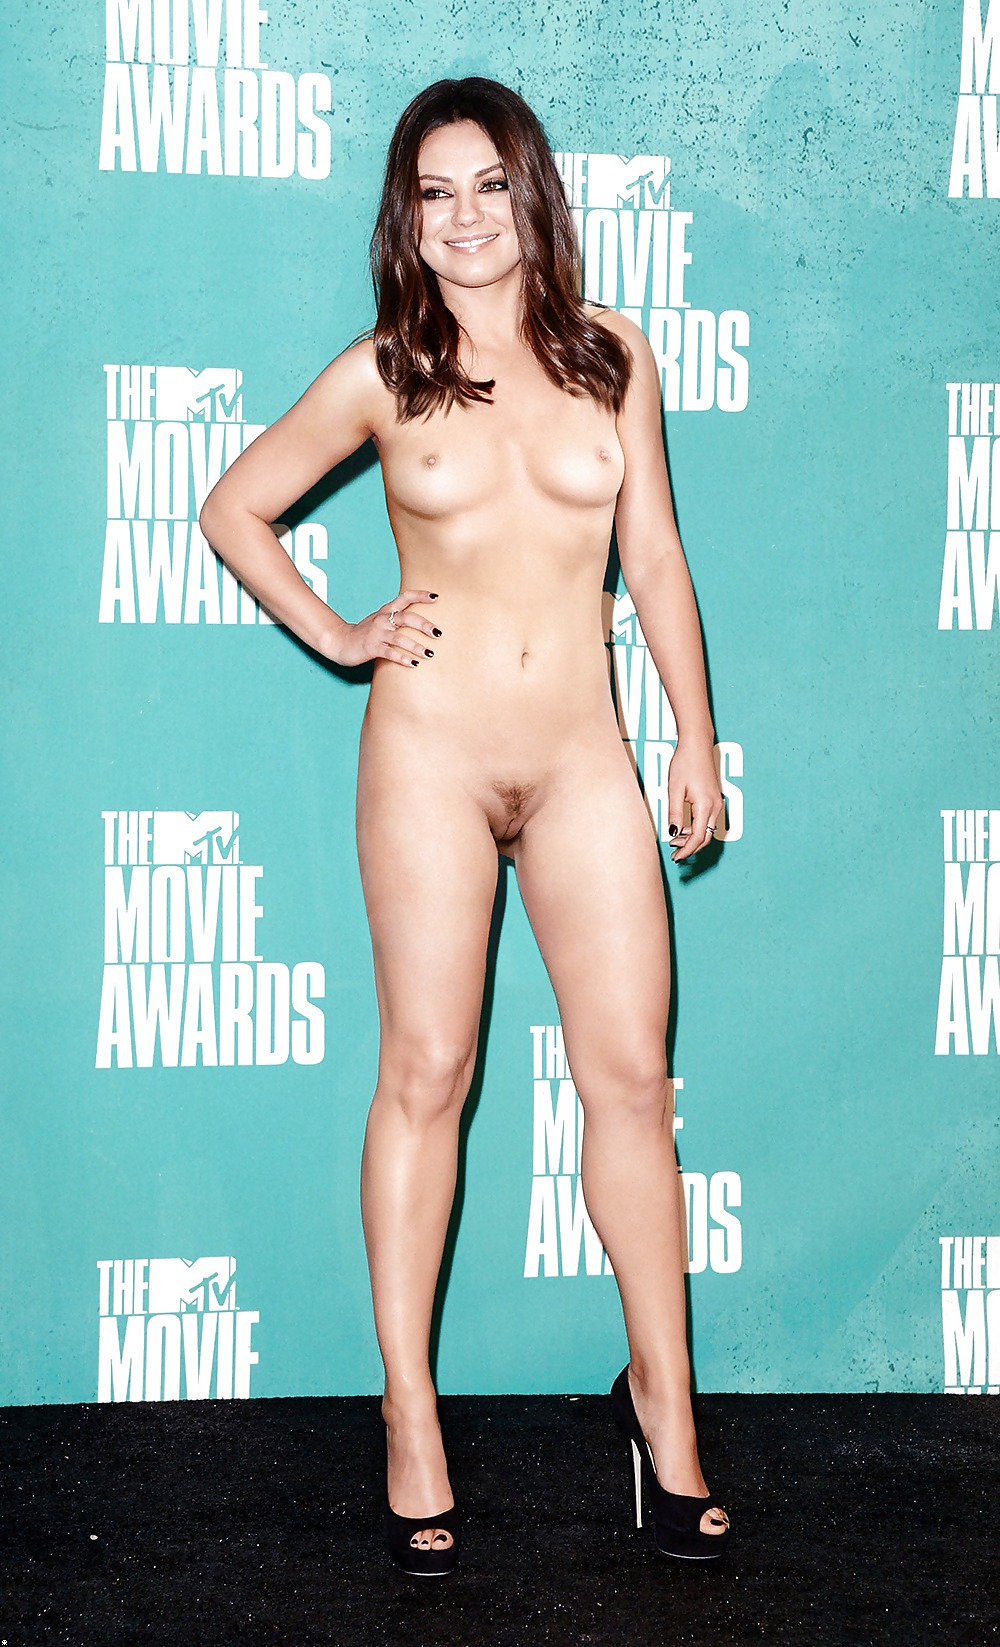 Celeb naked pictures — photo 6